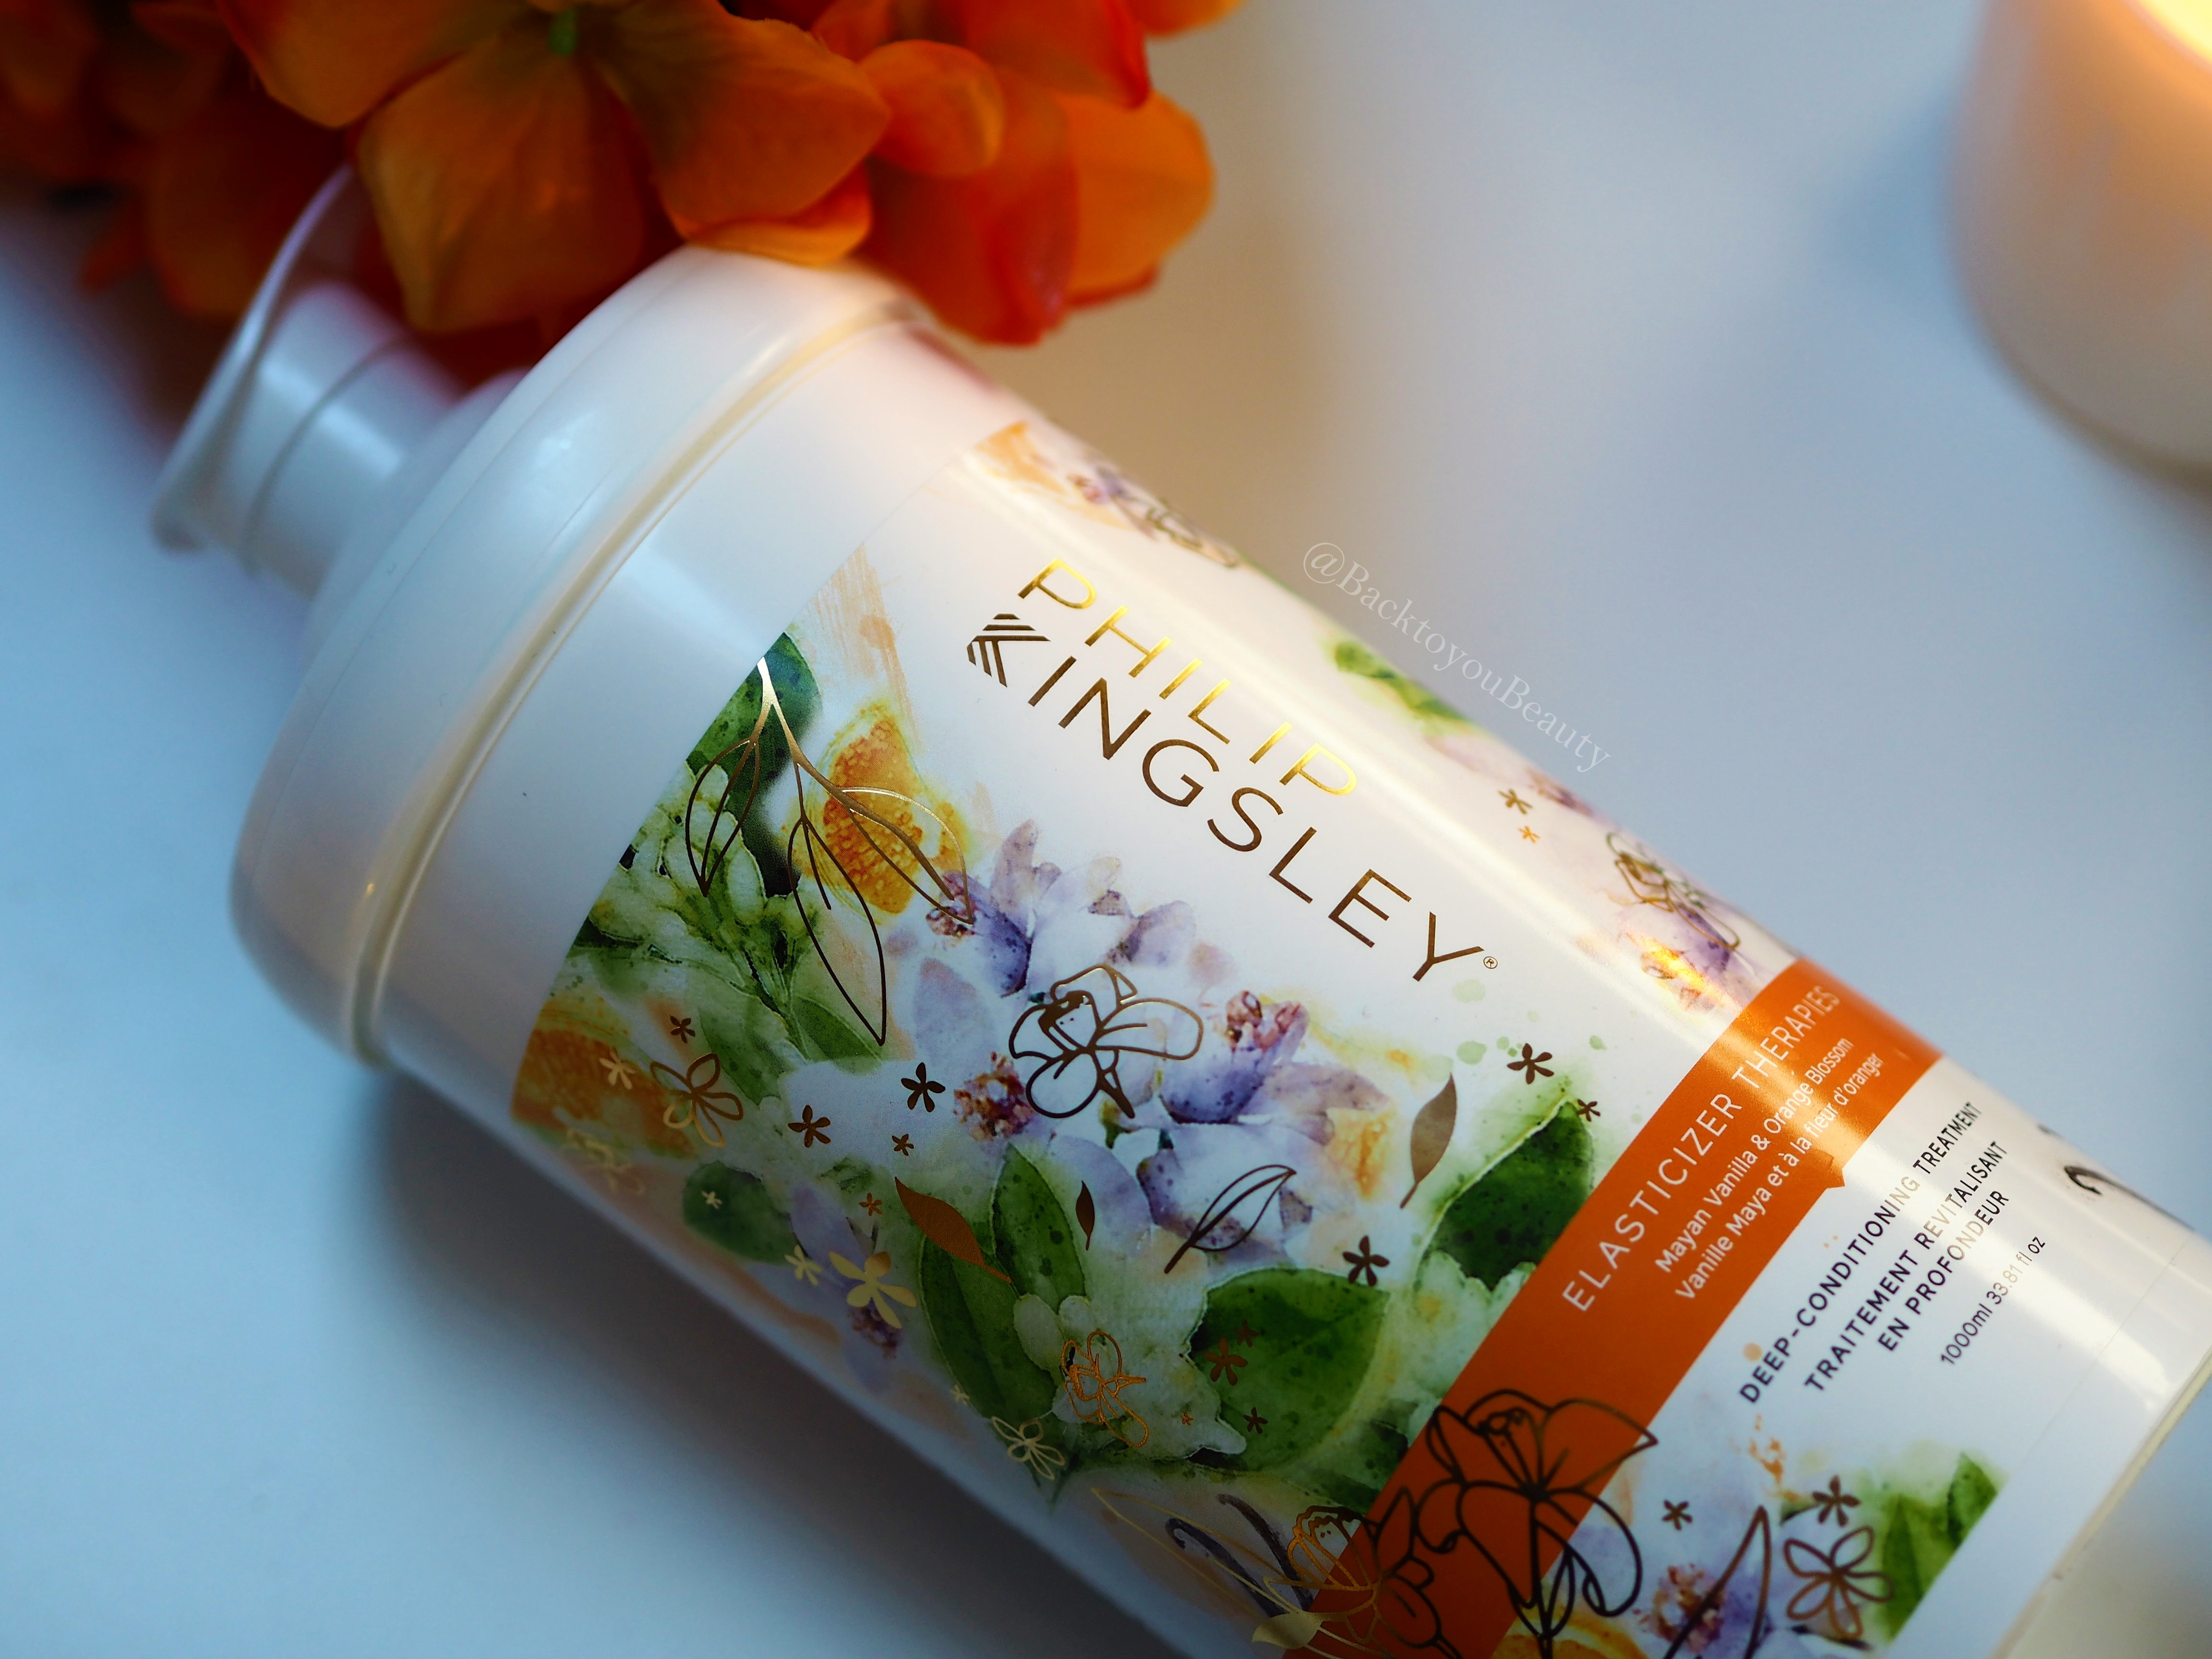 Philip Kingsley 1 litre Mayan Vanilla and Orange Blossom Elasticizer